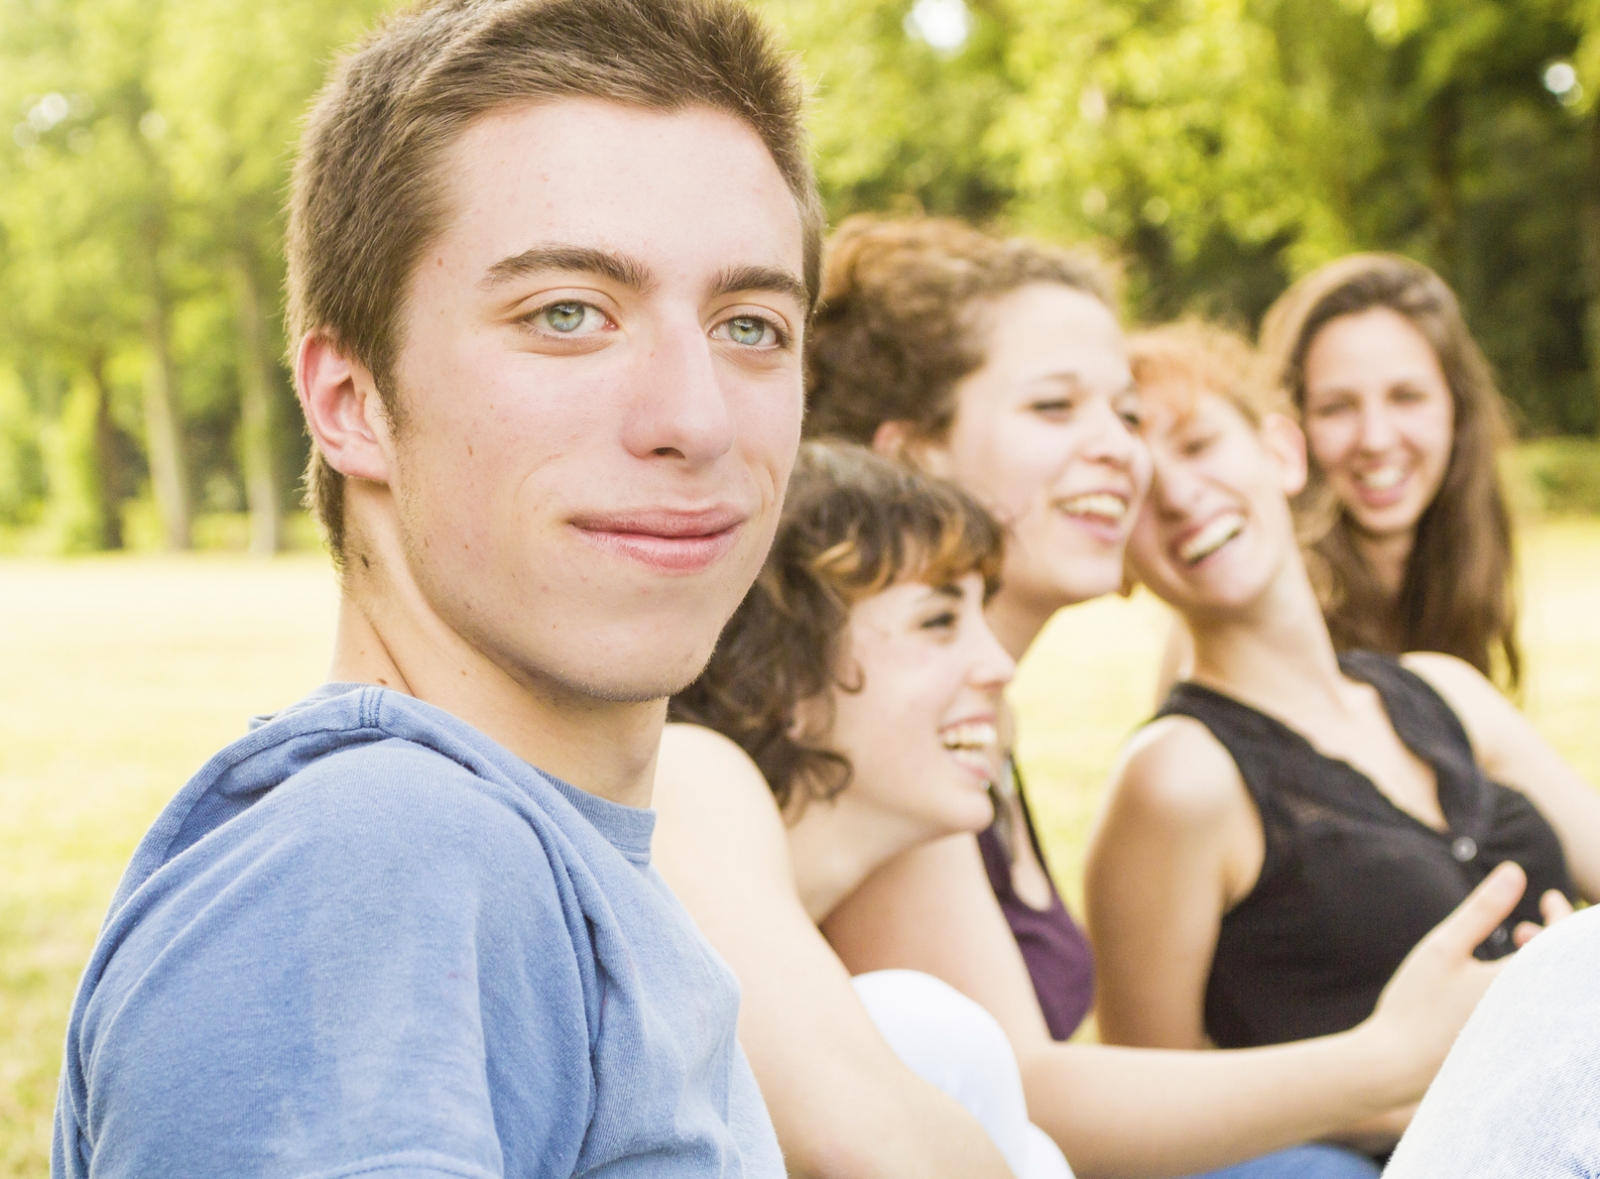 Adolescence lasts until 24, scientists say